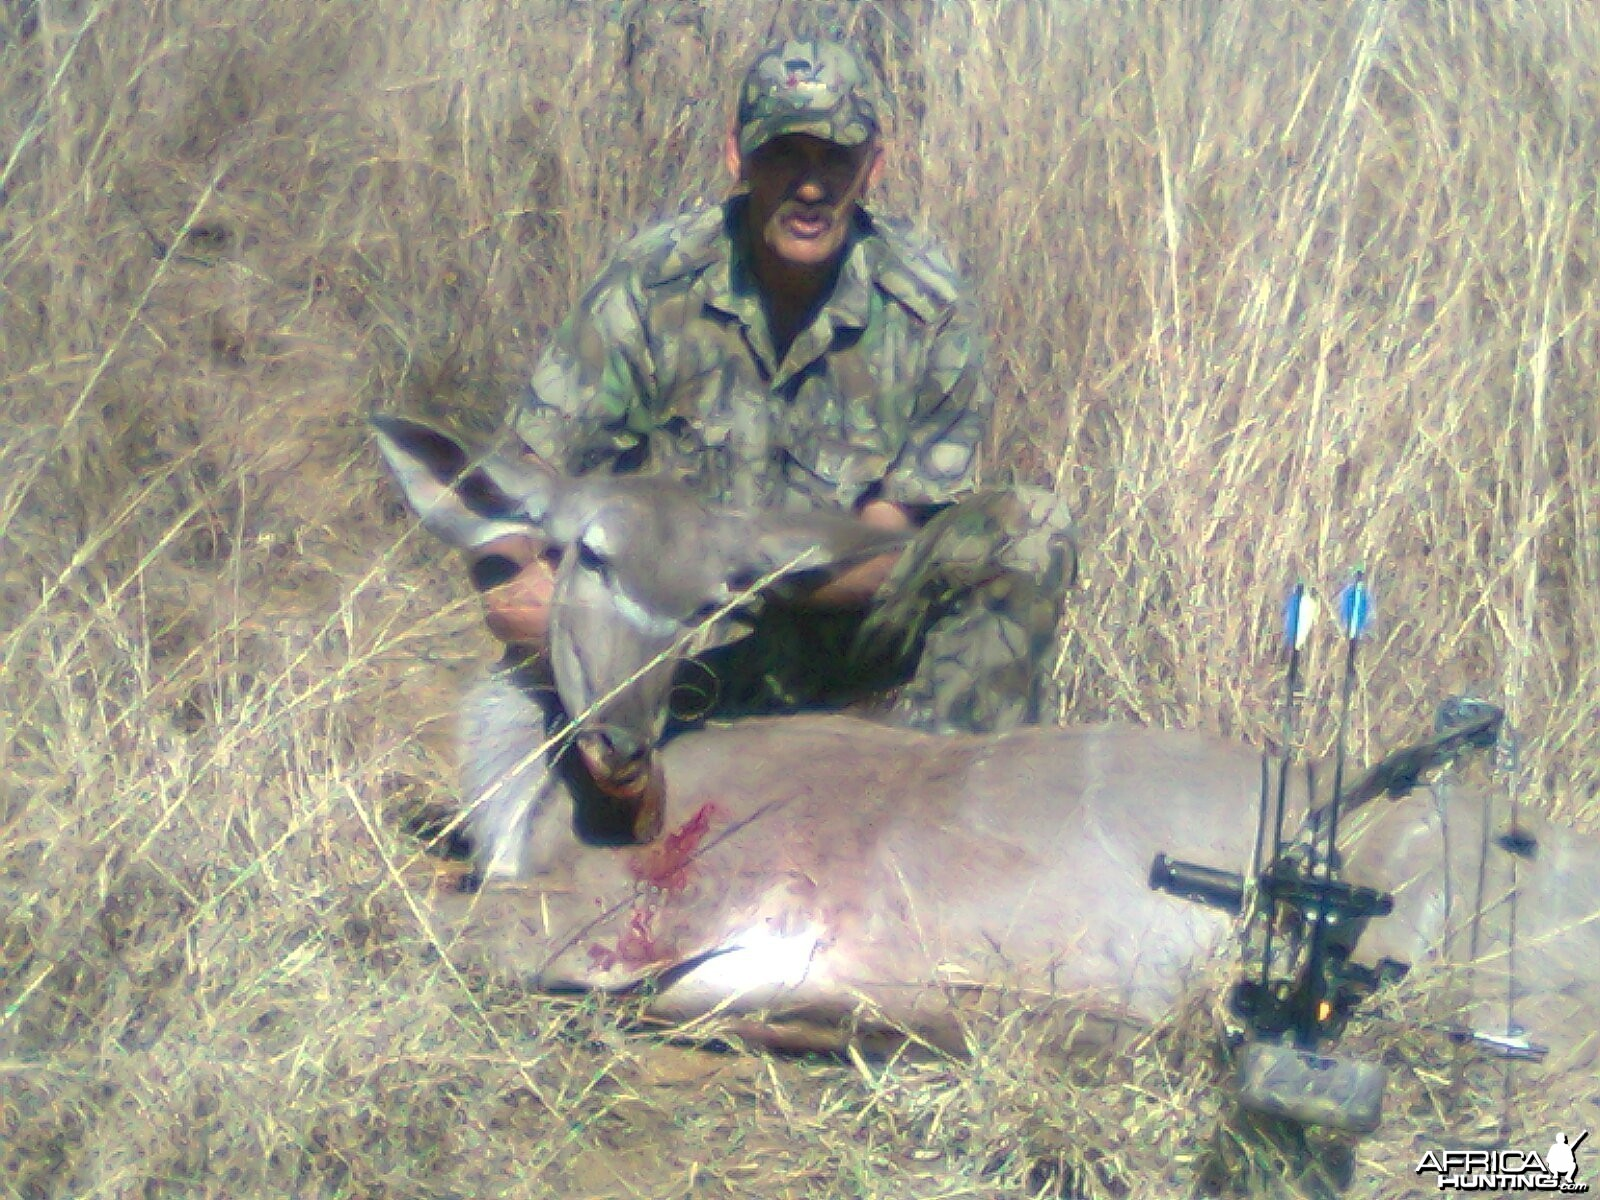 Oom Danie and his kudu cow with bow